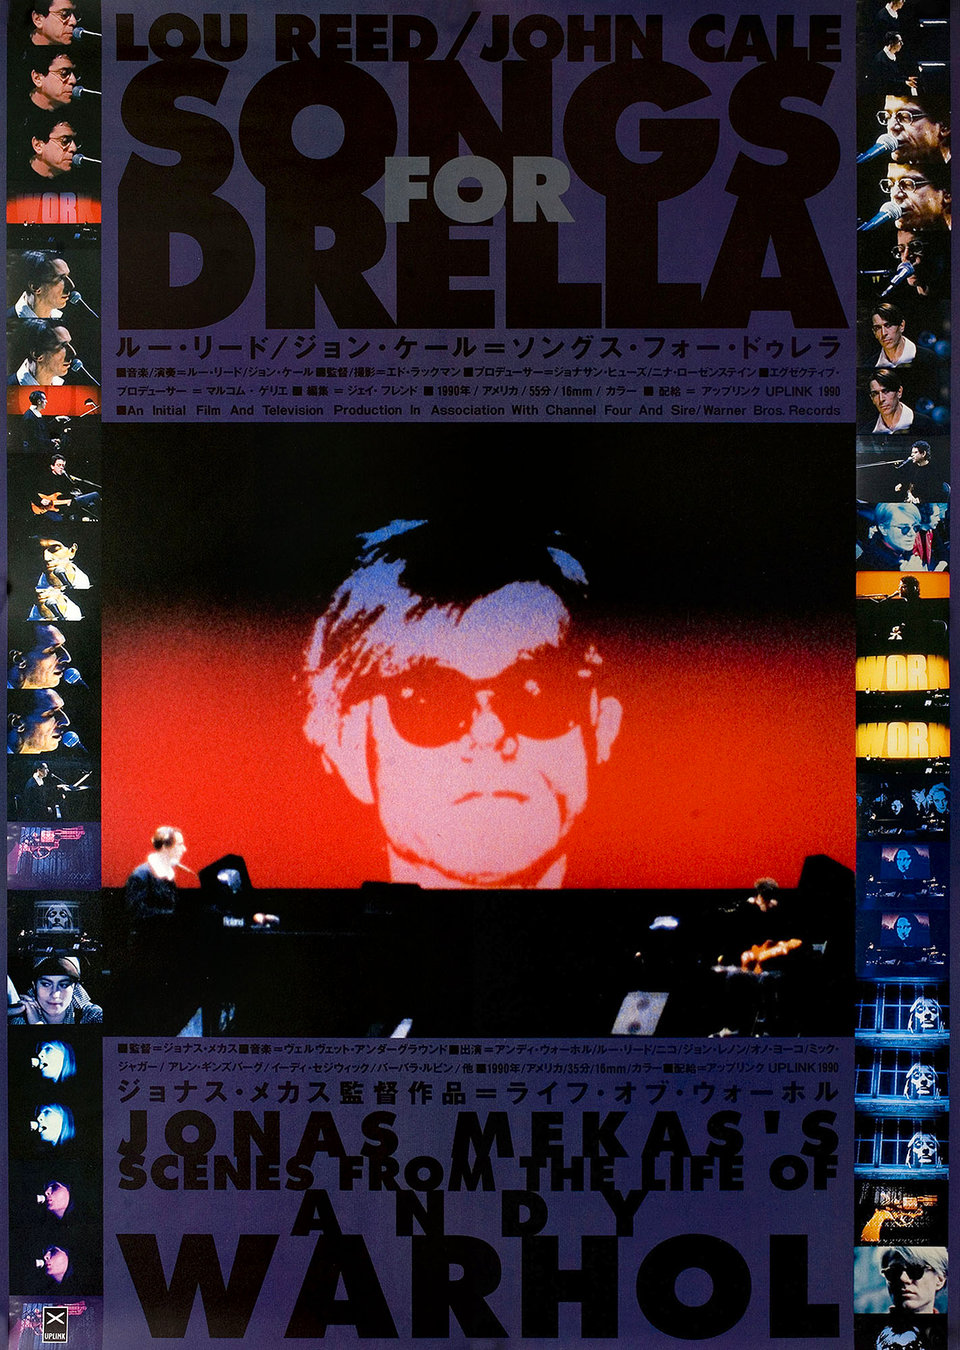 Songs for Drella / Scenes from the Life of Andy Warhol: Friendships and Intersections 1989 Japanese B2 Poster